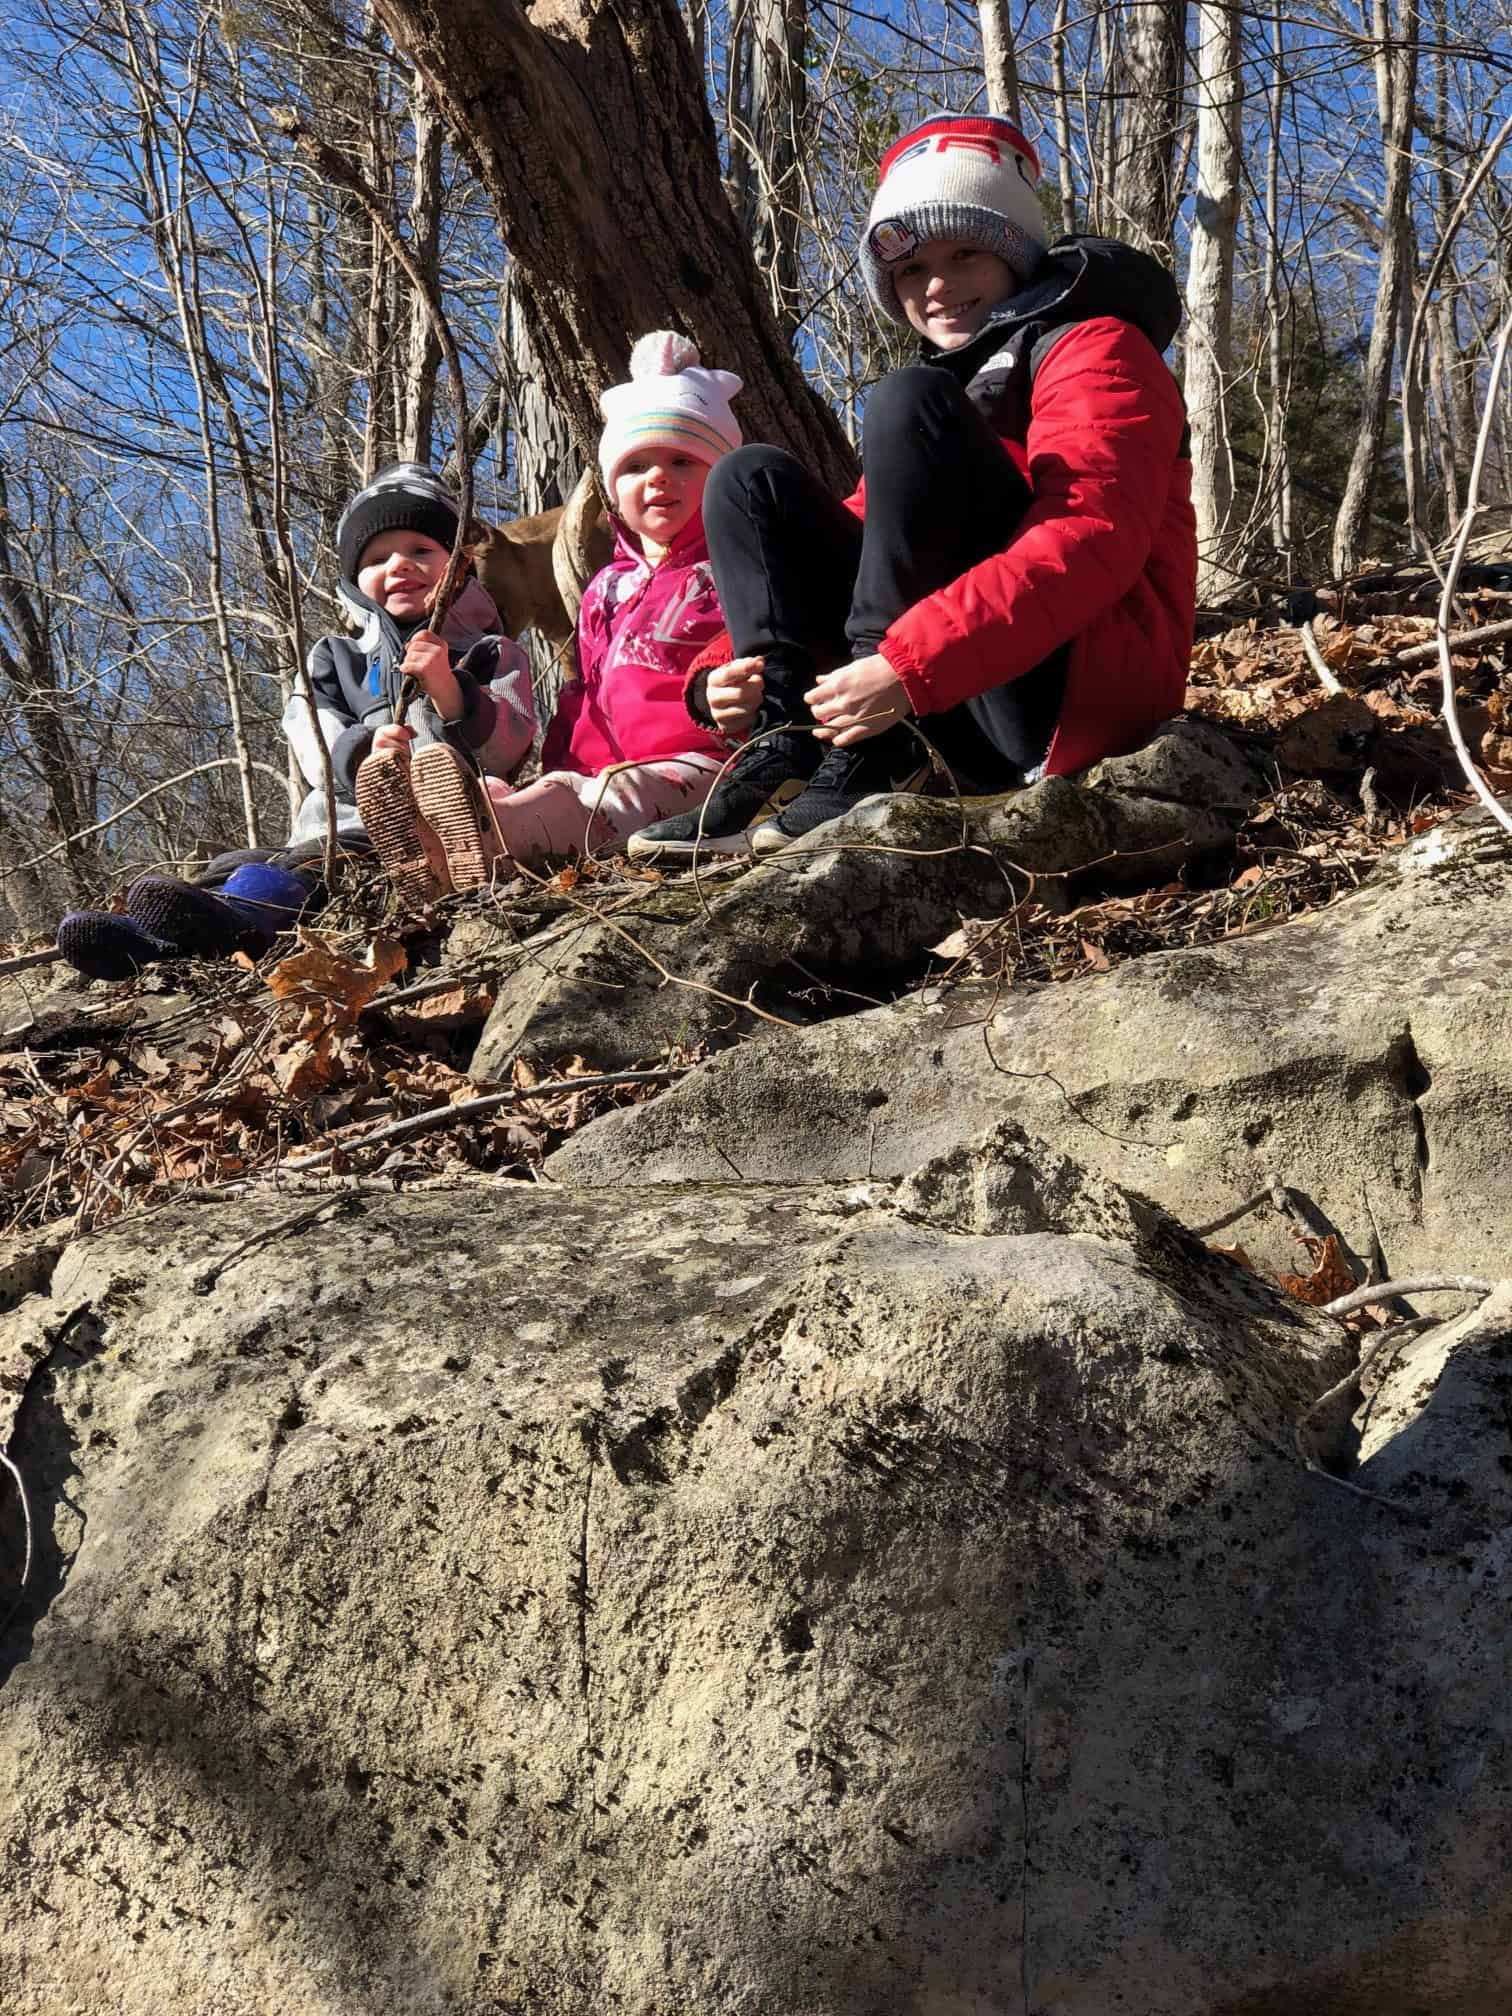 Taylor McKinney's children outdoors on a rock